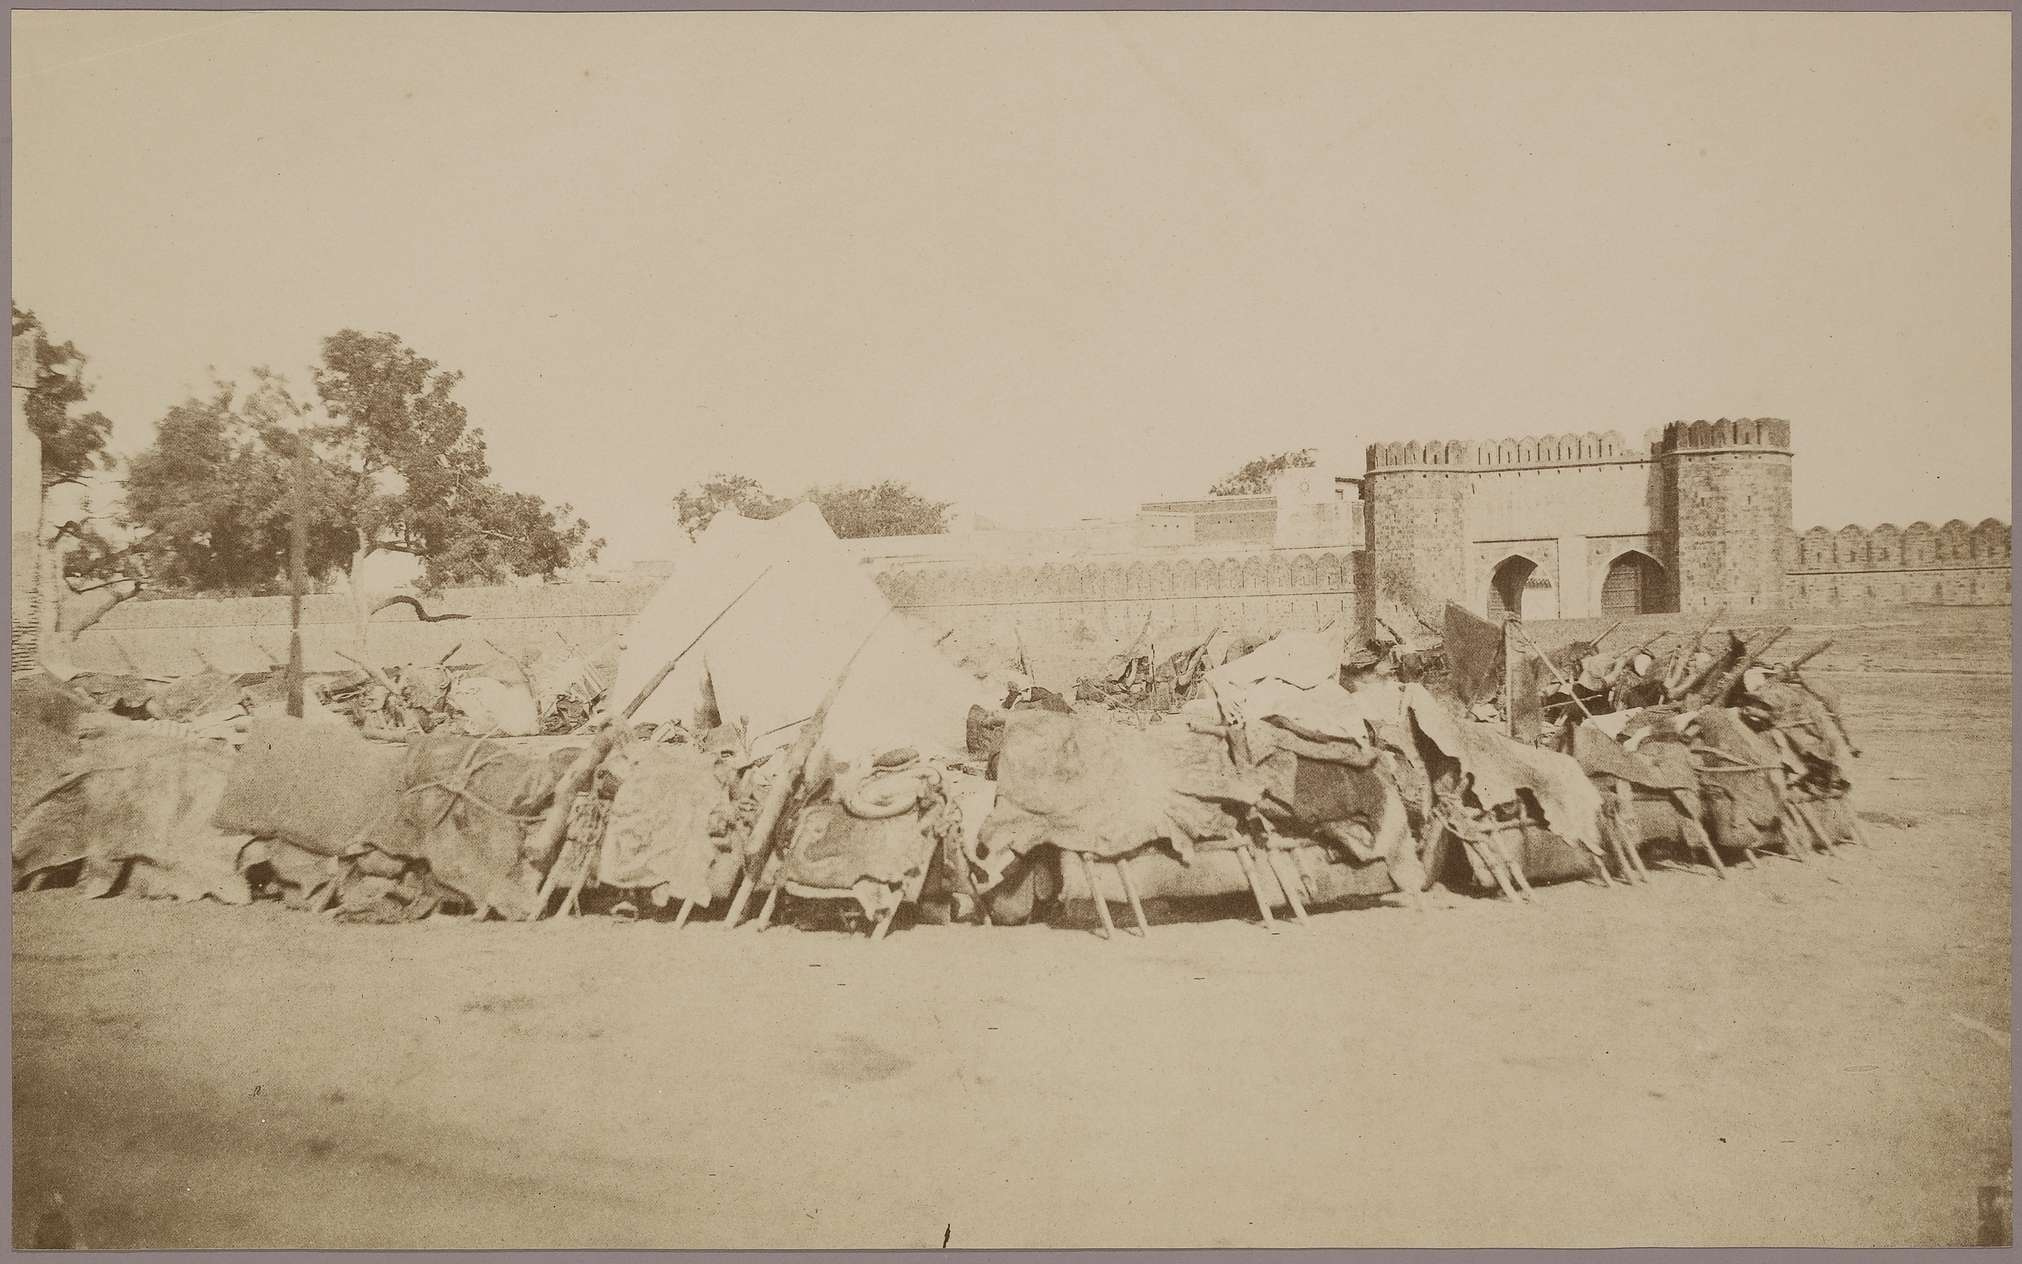 Lahore Gate of Delhi with Patiala Raja's Zumbruck (Camel Gun Encampment) - c.1857-1858